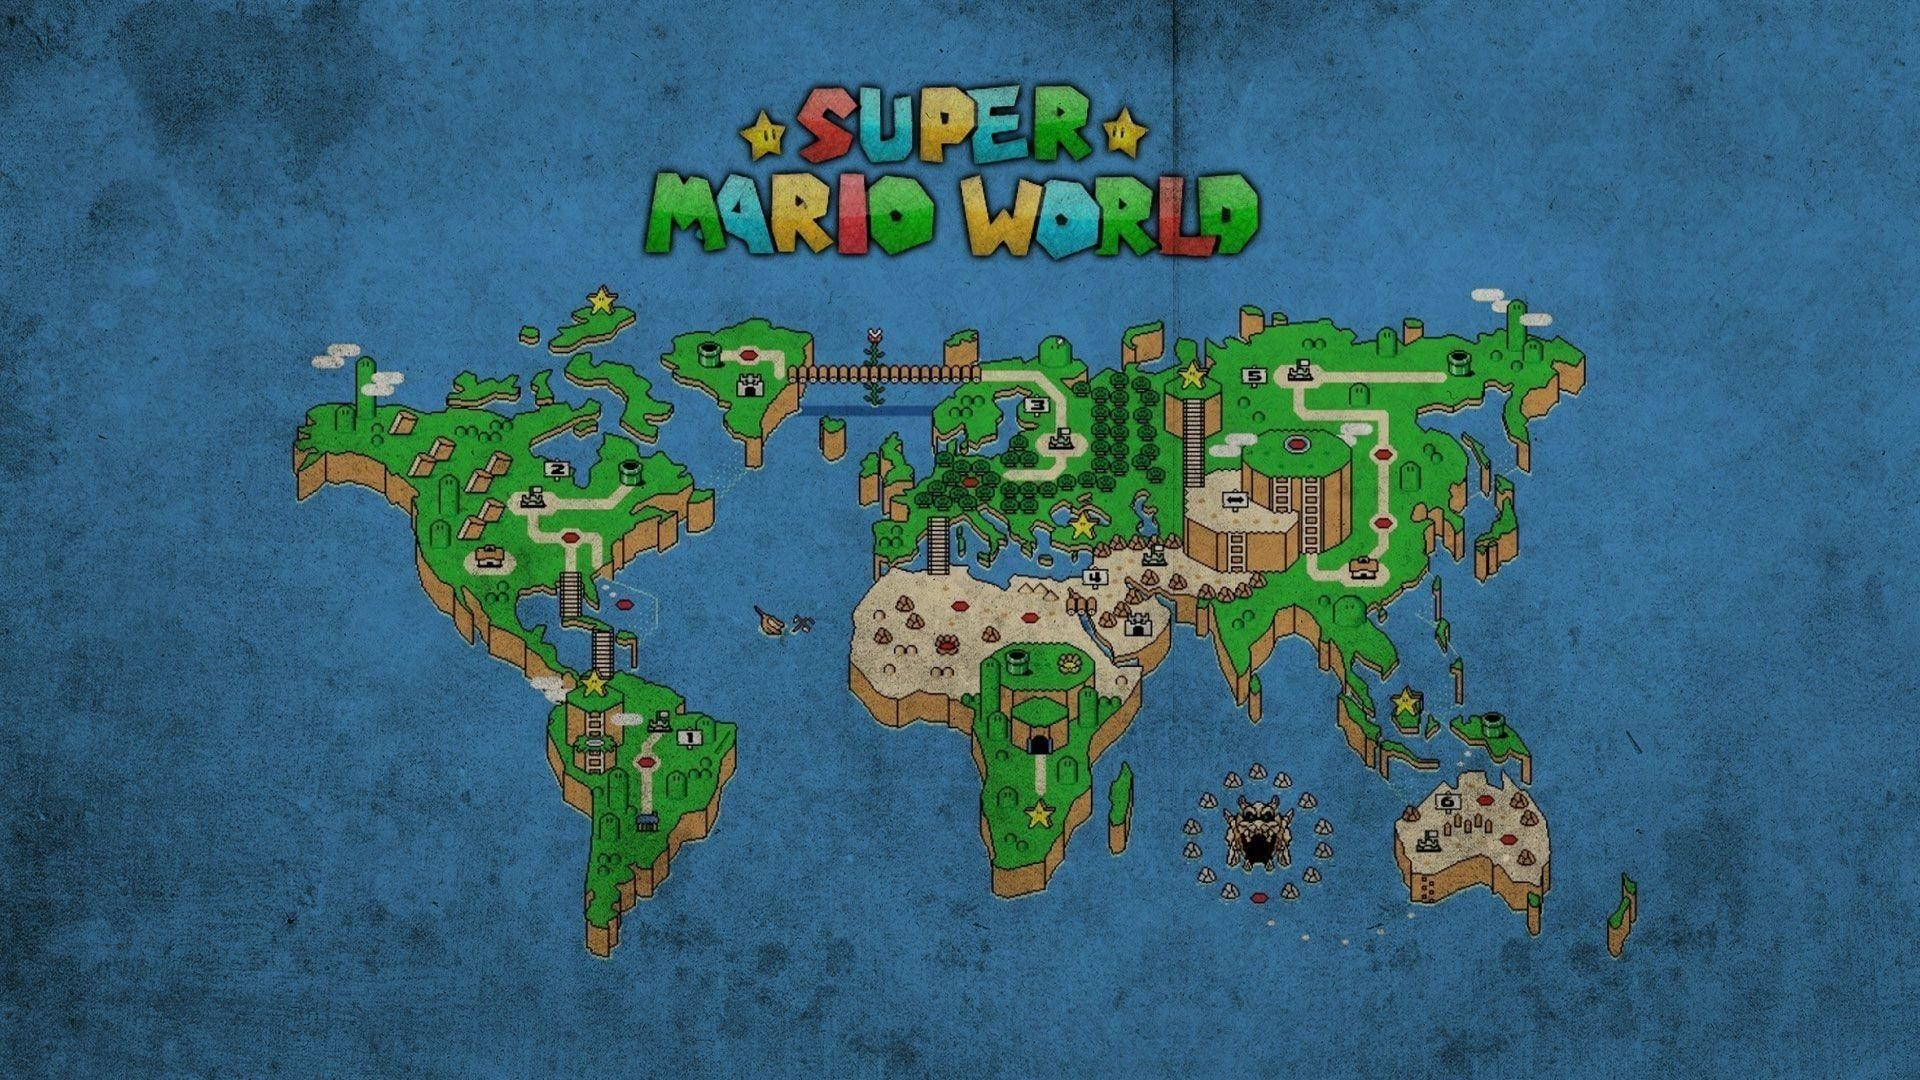 super mario world map wallpaper fresh super mario world map